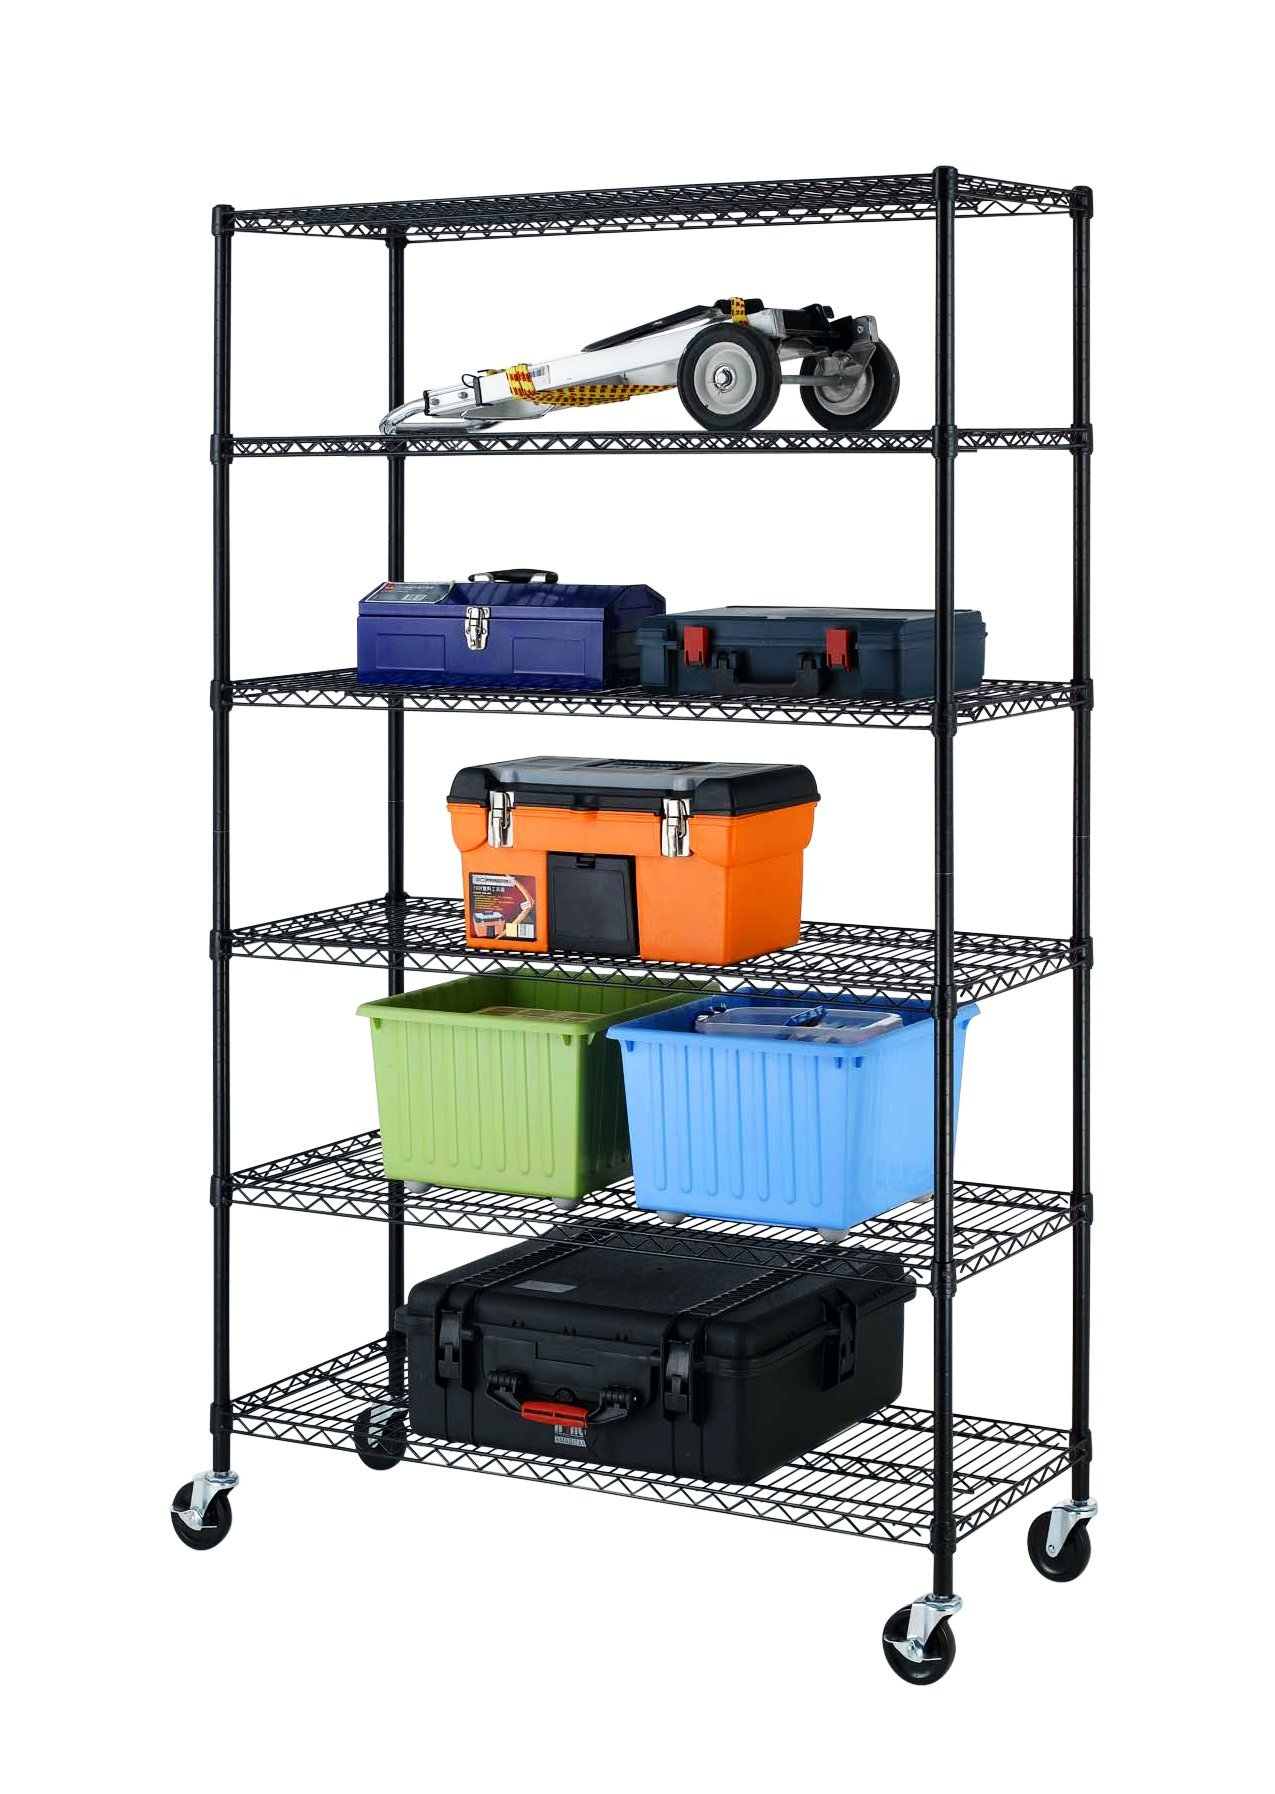 New 82''x48''x18'' 6 Tier Layer Shelf Adjustable Wire Metal Shelving Rack by BestOffice (Image #2)